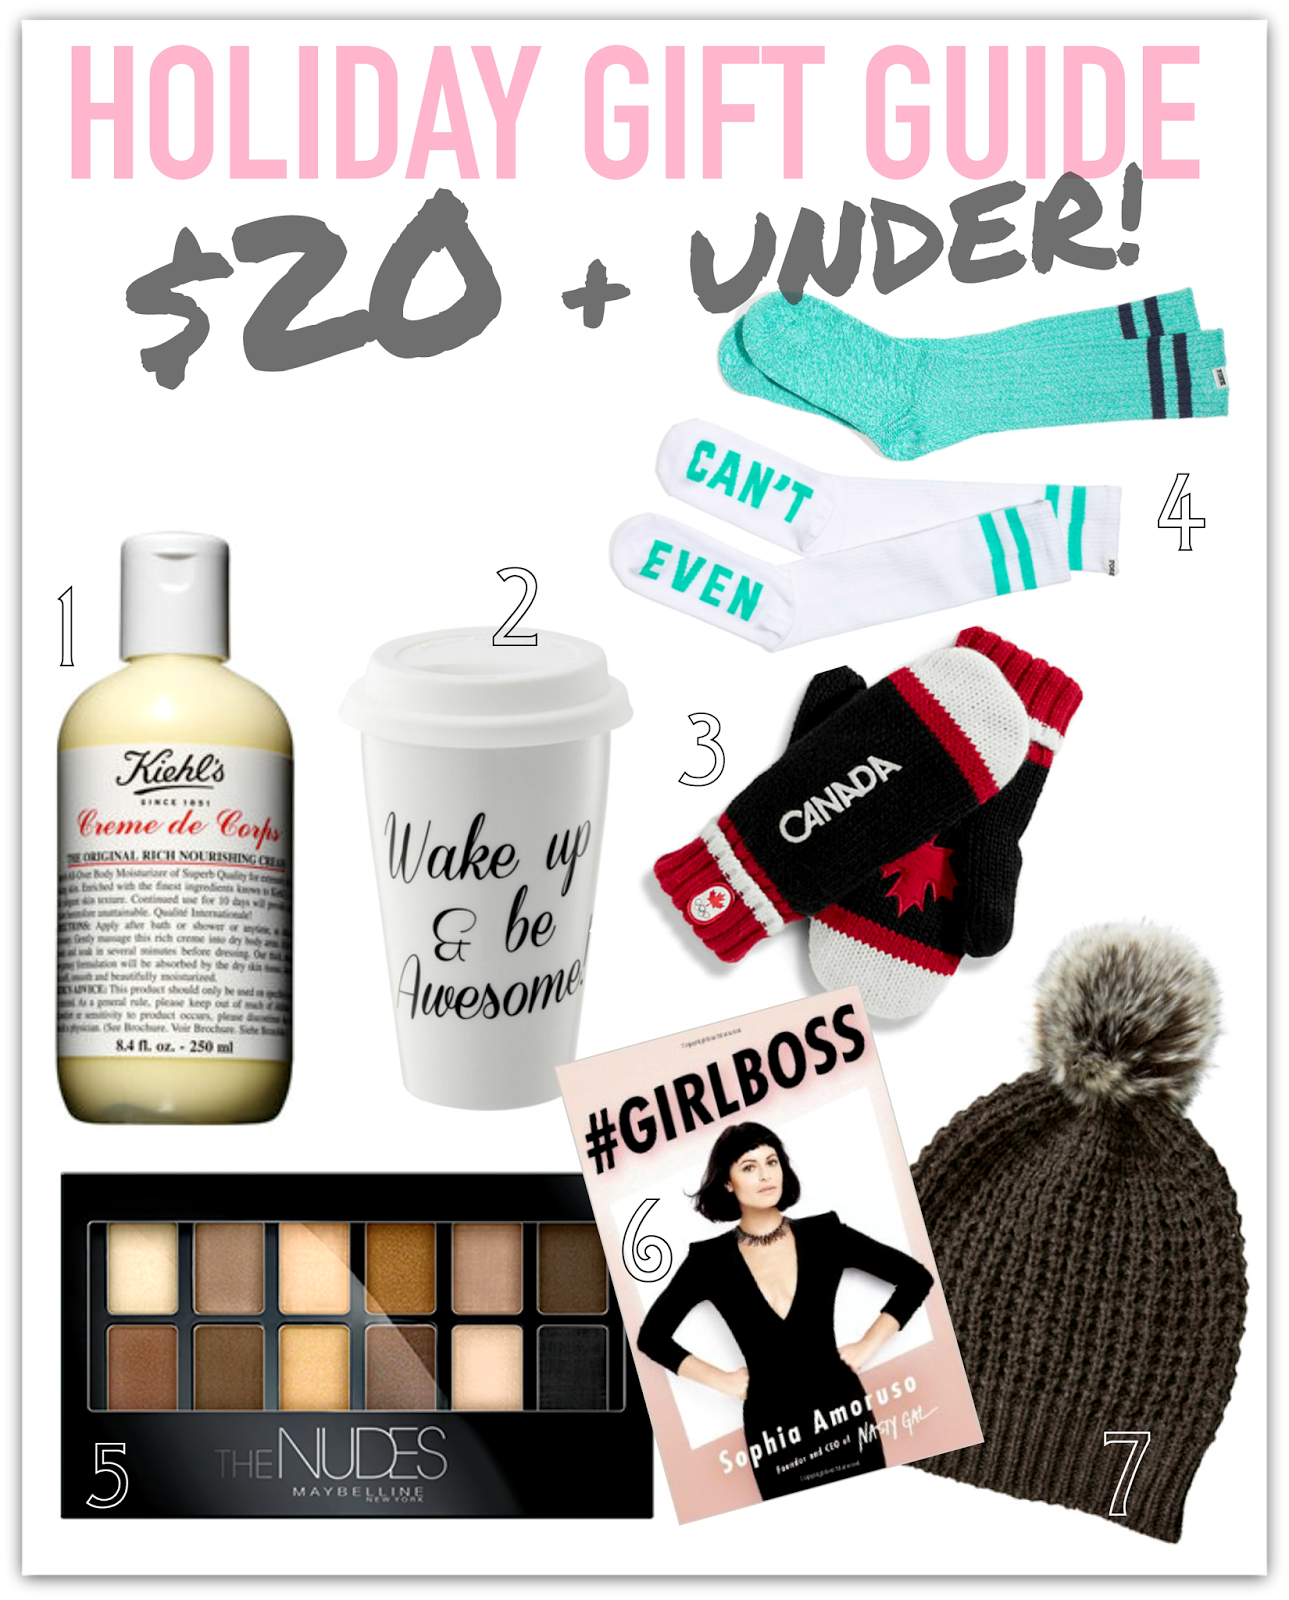 HOLIDAY GIFT GUIDE 2014: $20 & Under! – Rach Speed